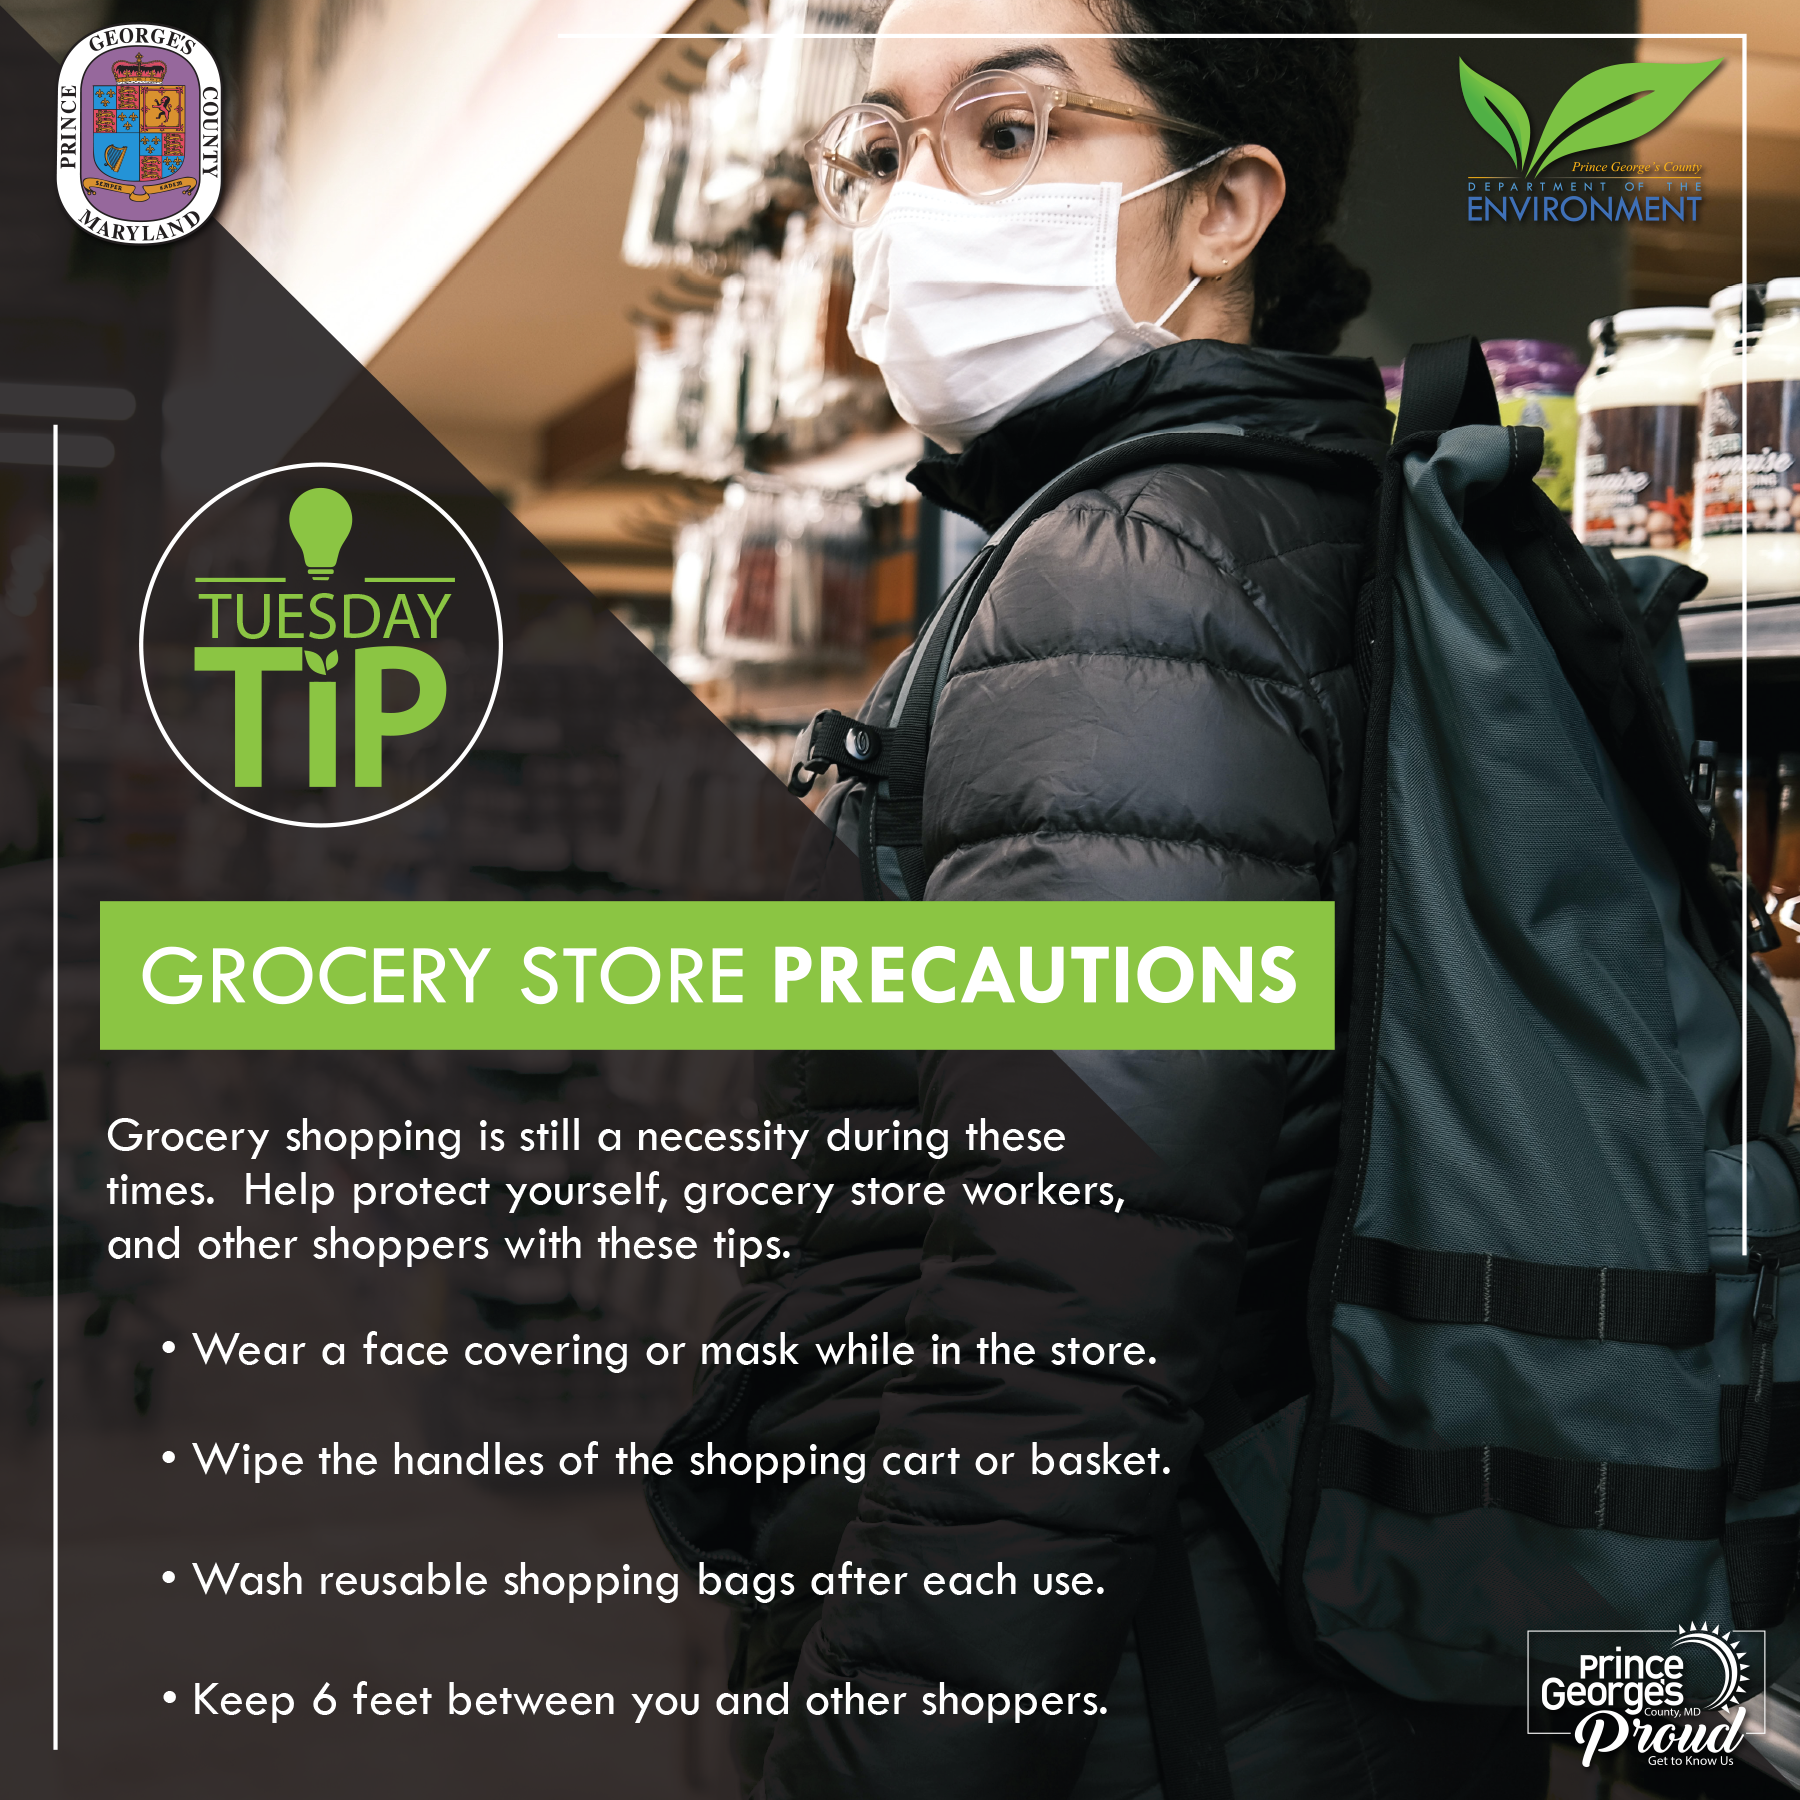 Tues tip 6.23.20 grocery precautions eng